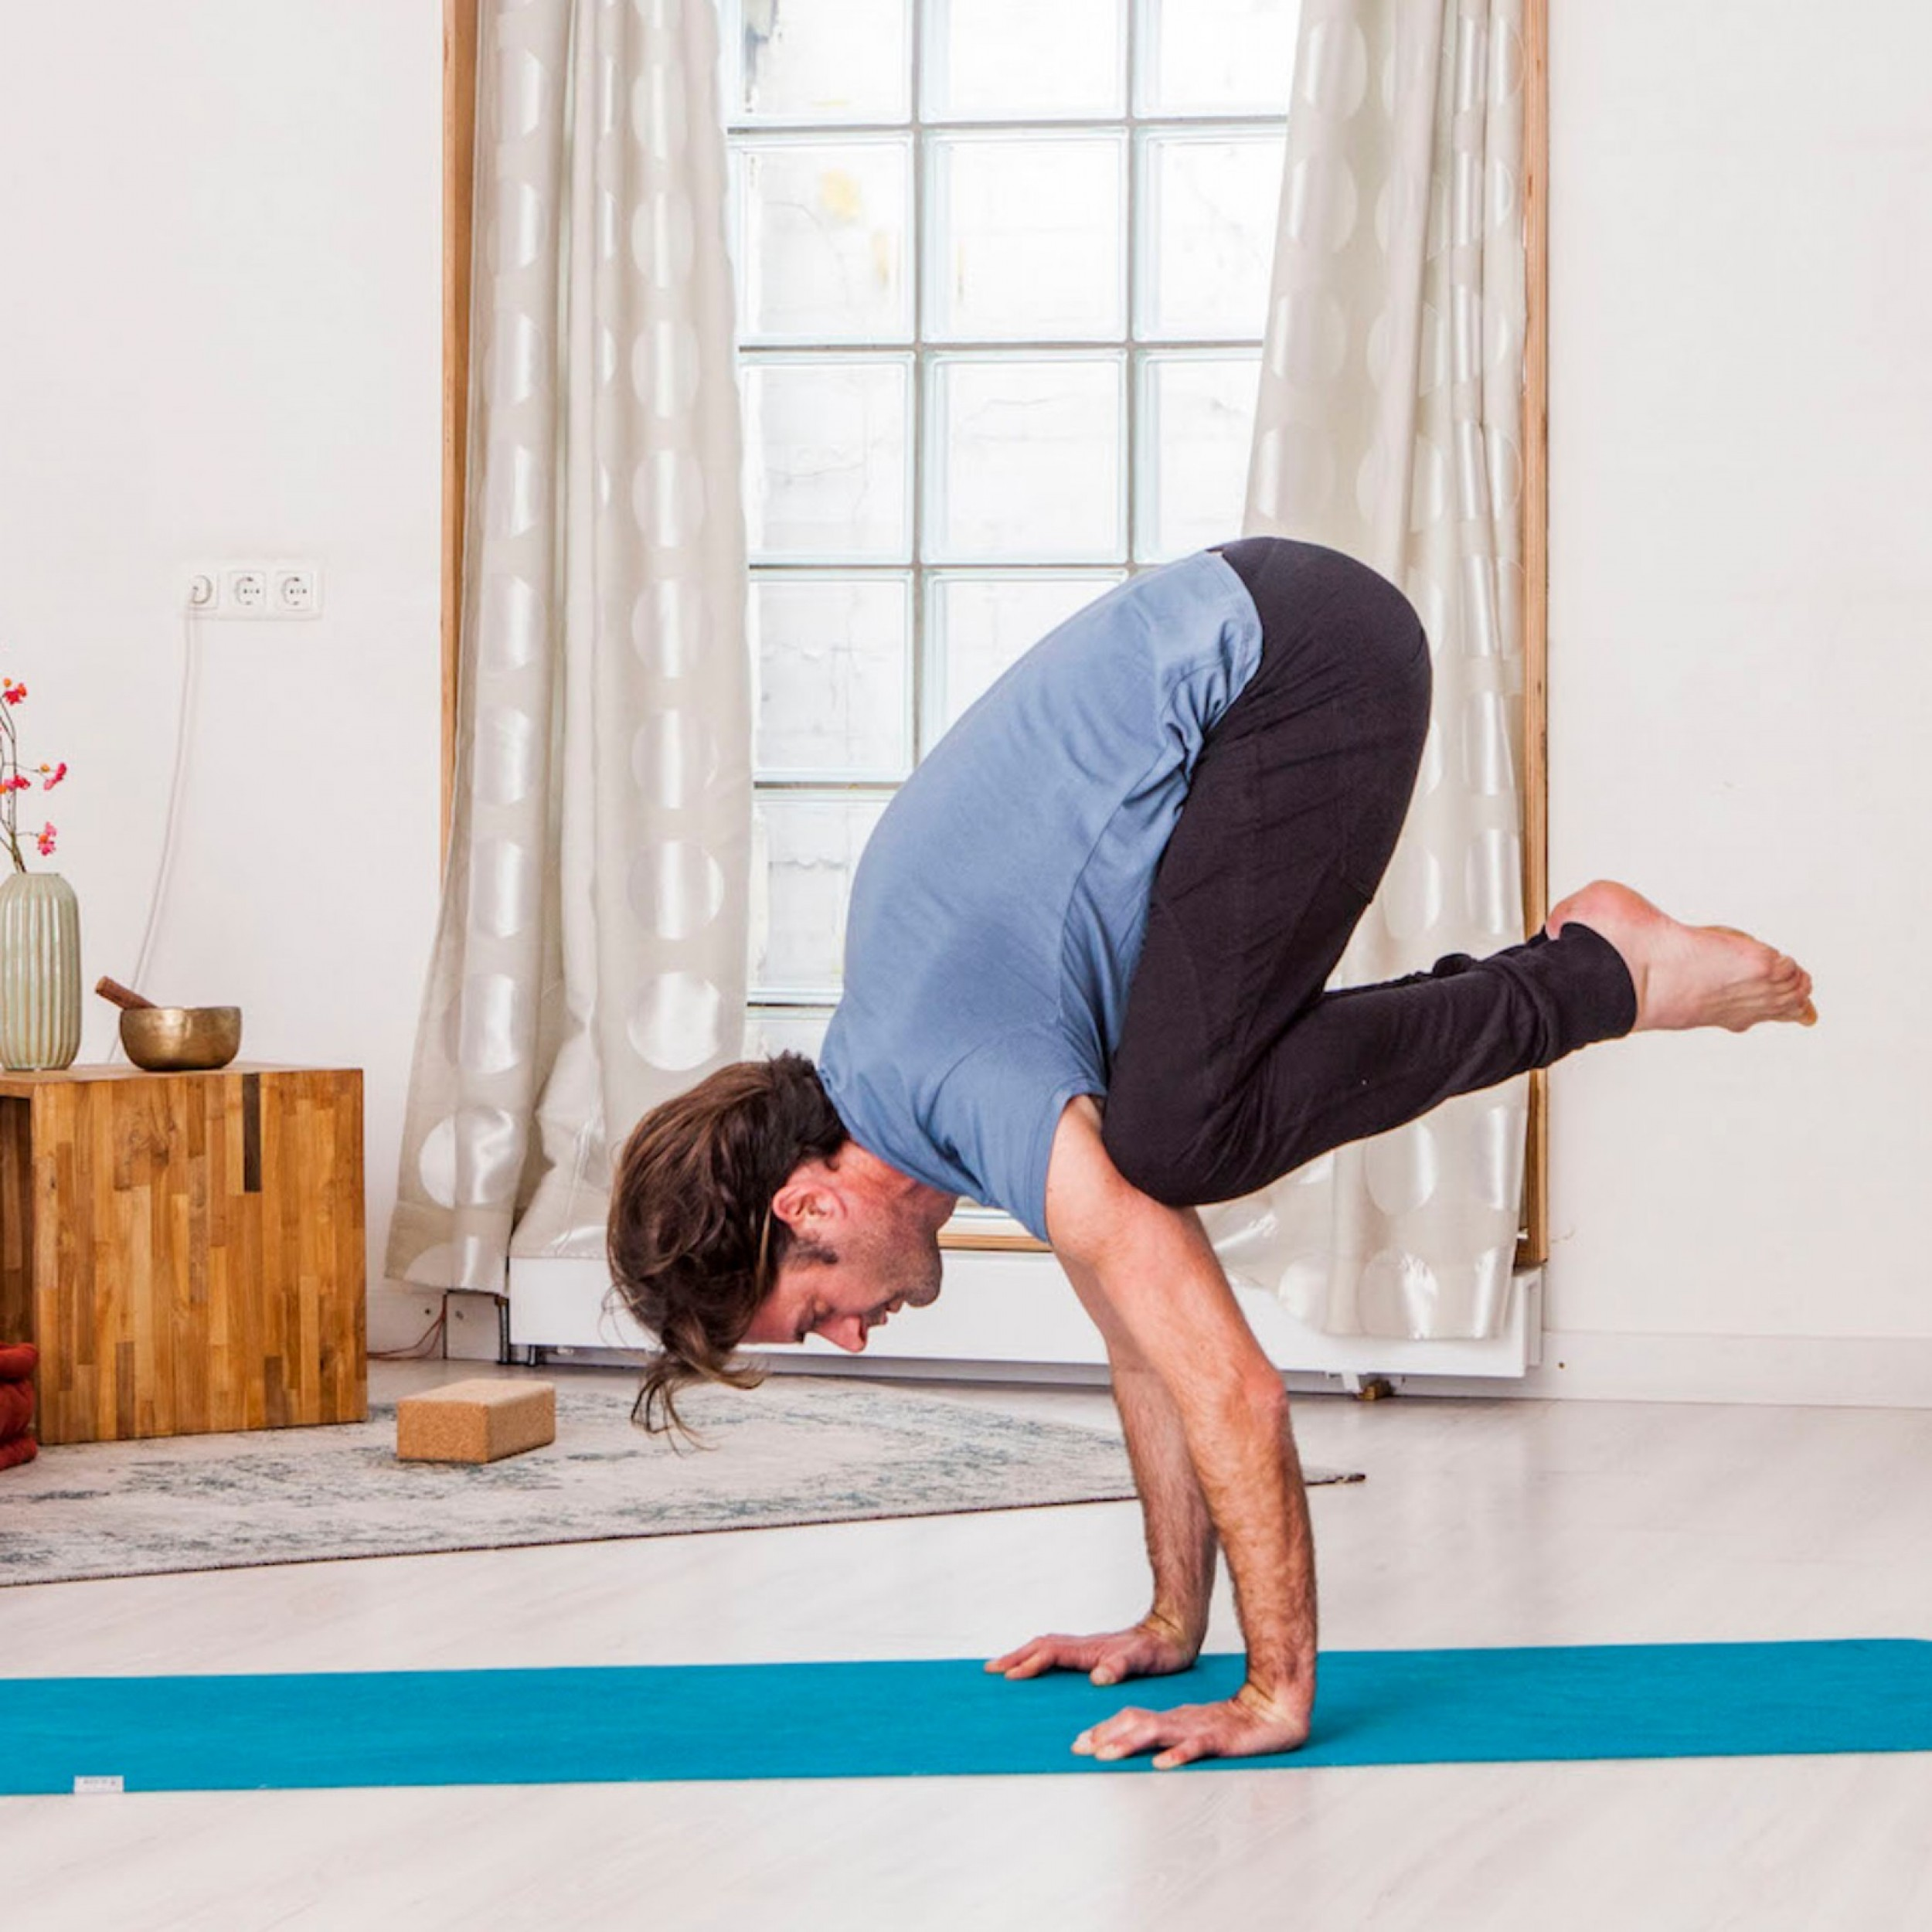 Playlists Of Yoga Classes For Every Mood For Beginners To Advanced Ekhart Yoga